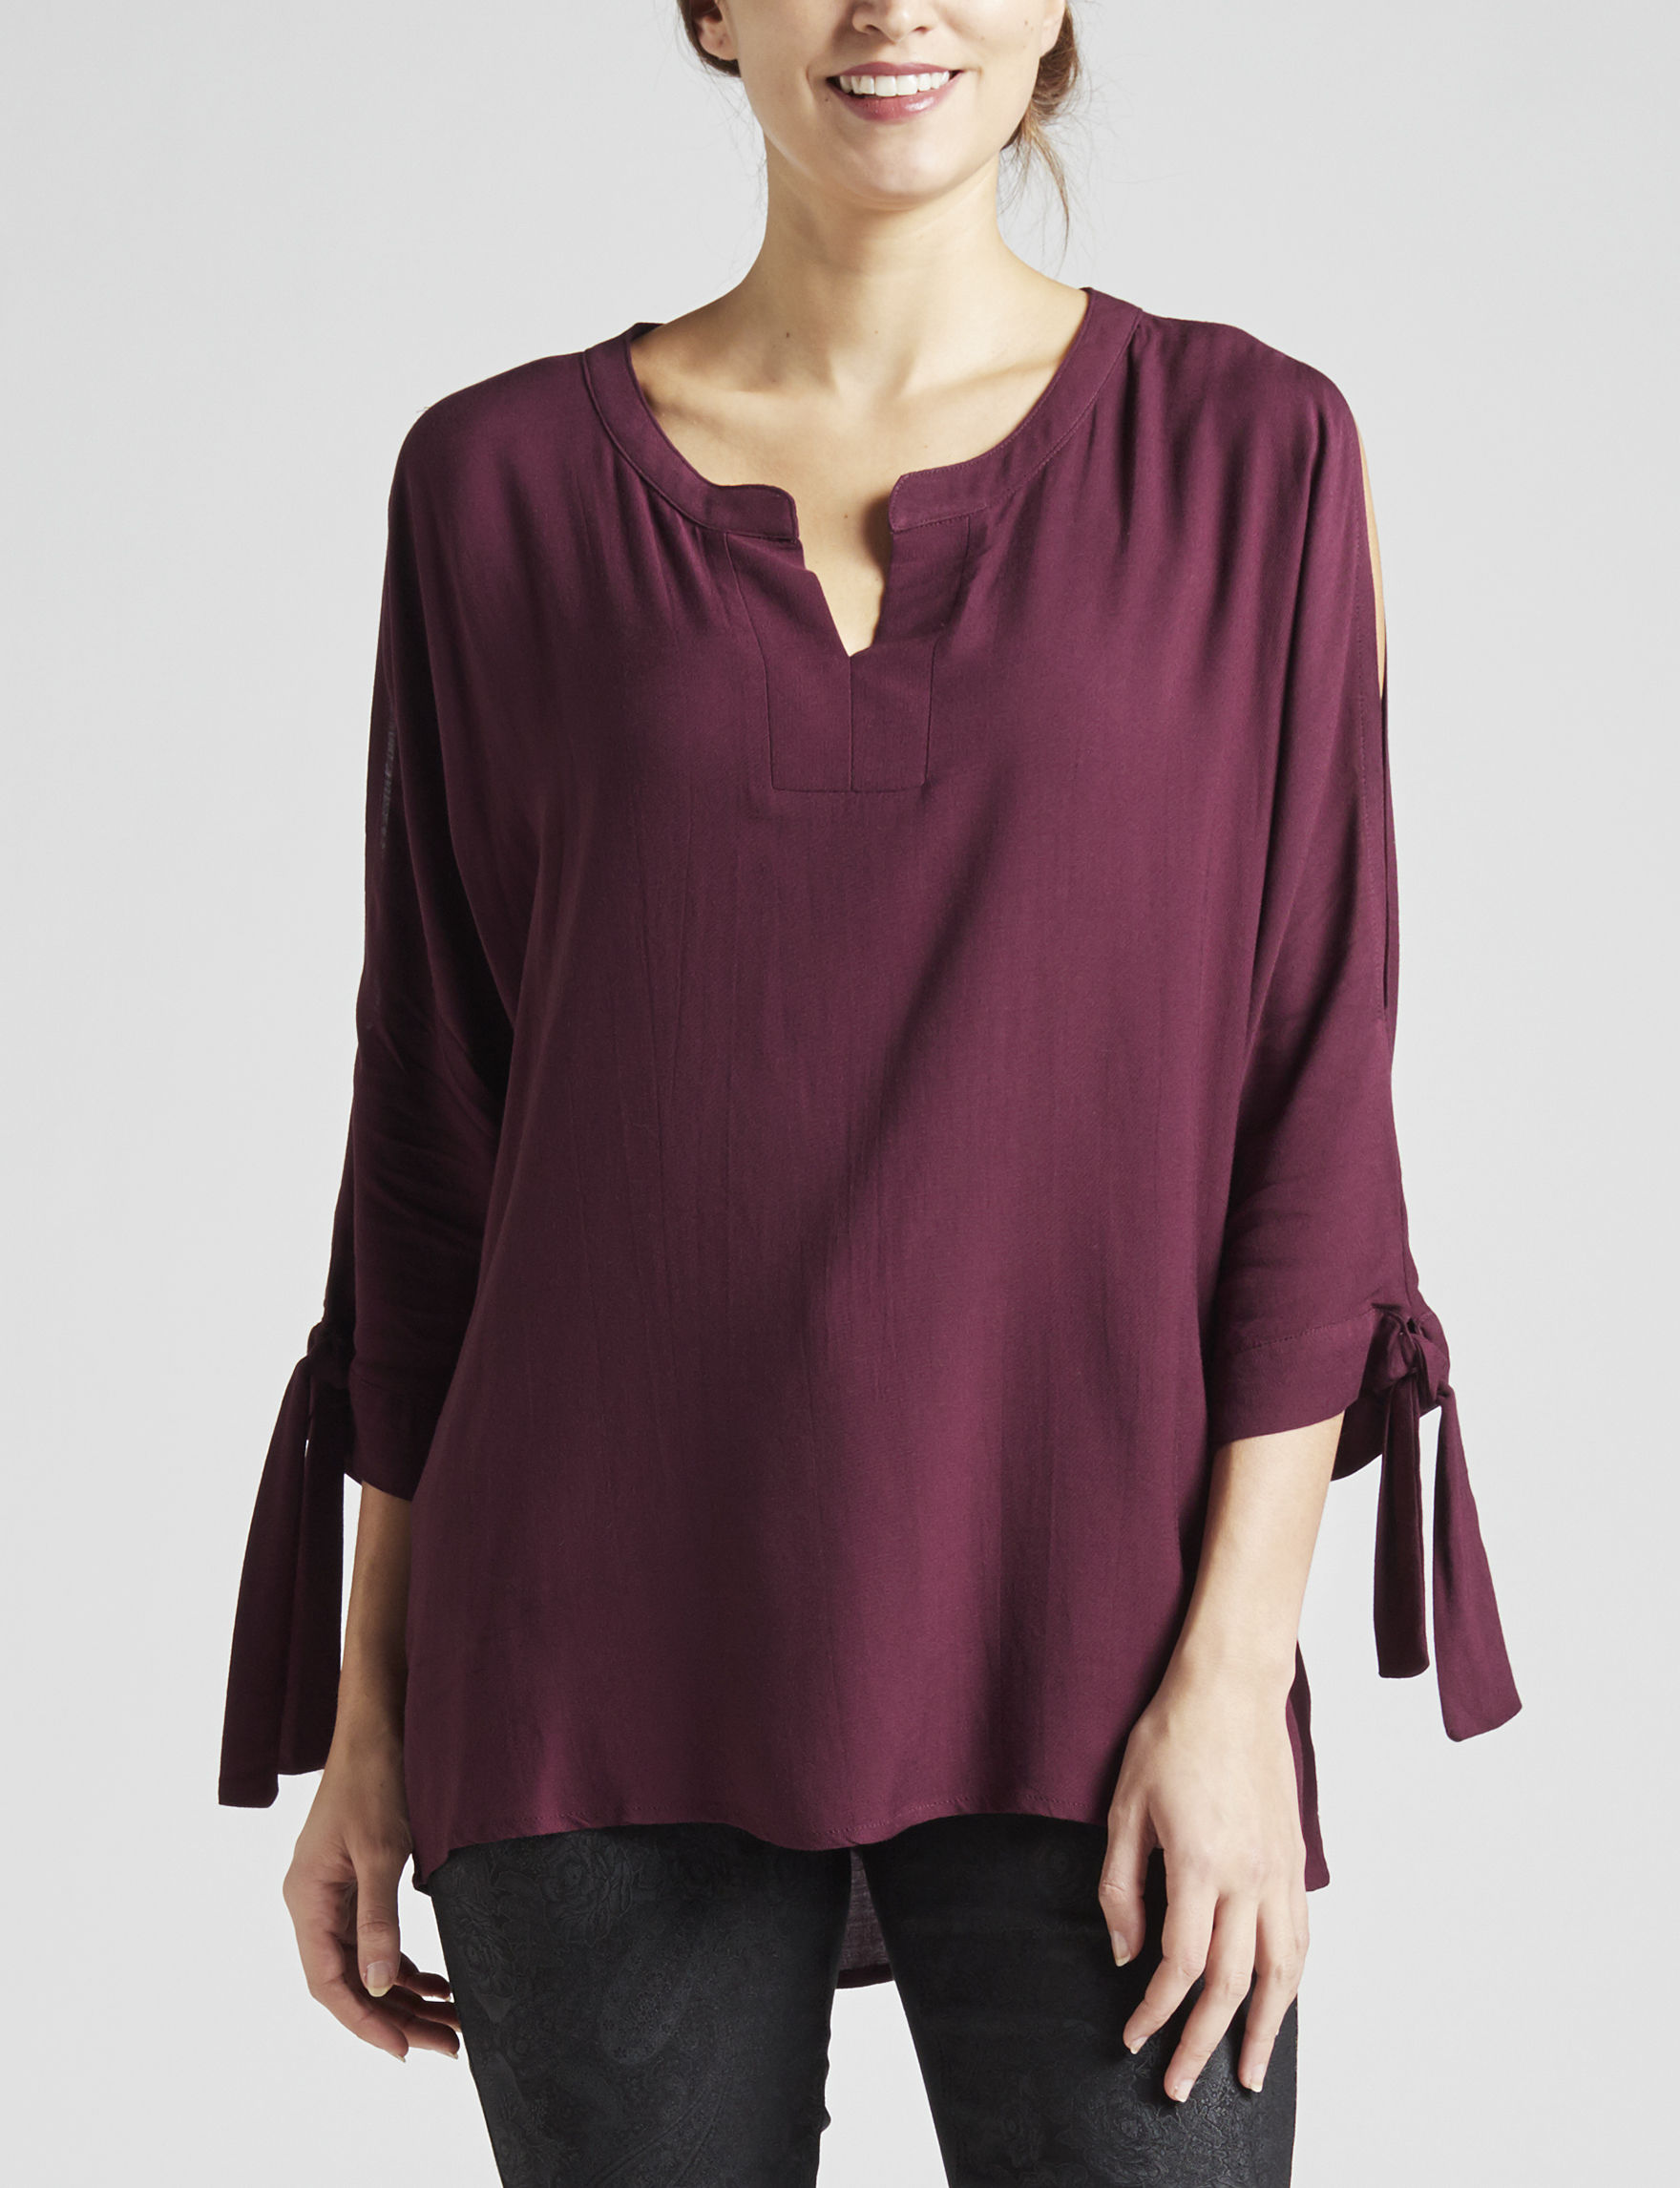 Signature Studio Burgundy Shirts & Blouses